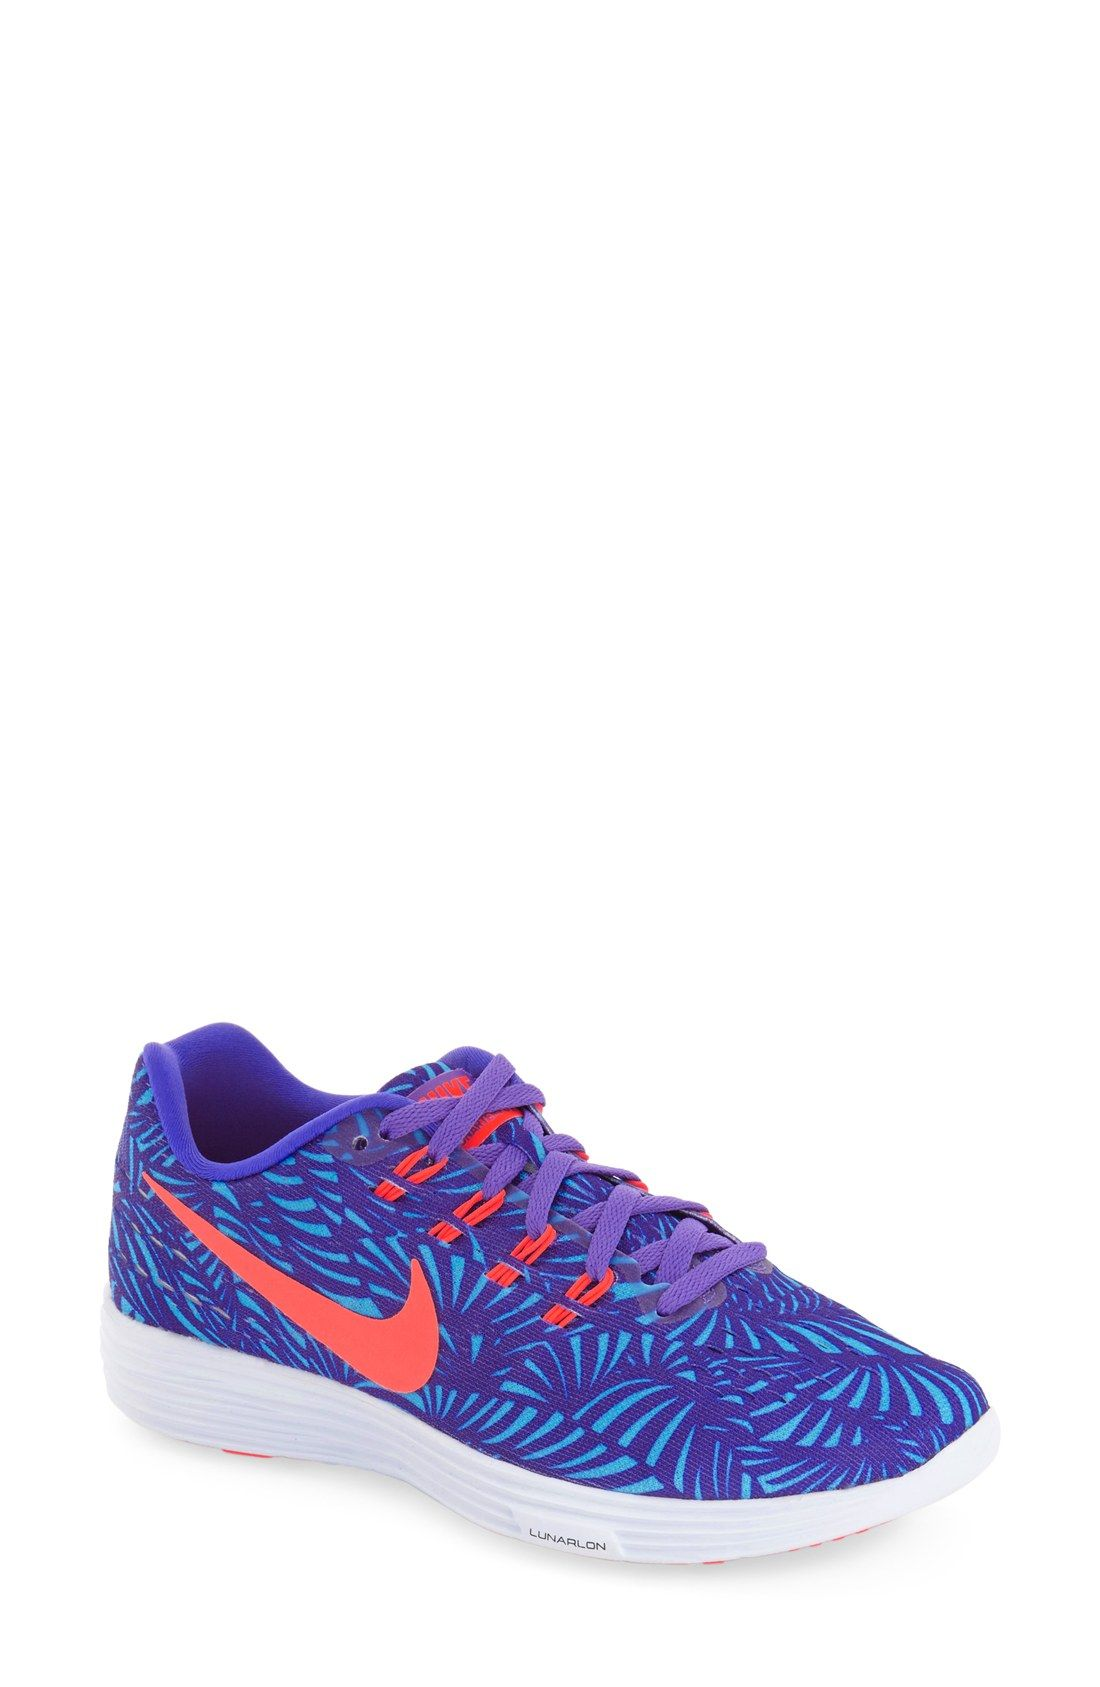 timeless design 44e35 f97e1 Staying active with these bold and colorful Nike running shoes.